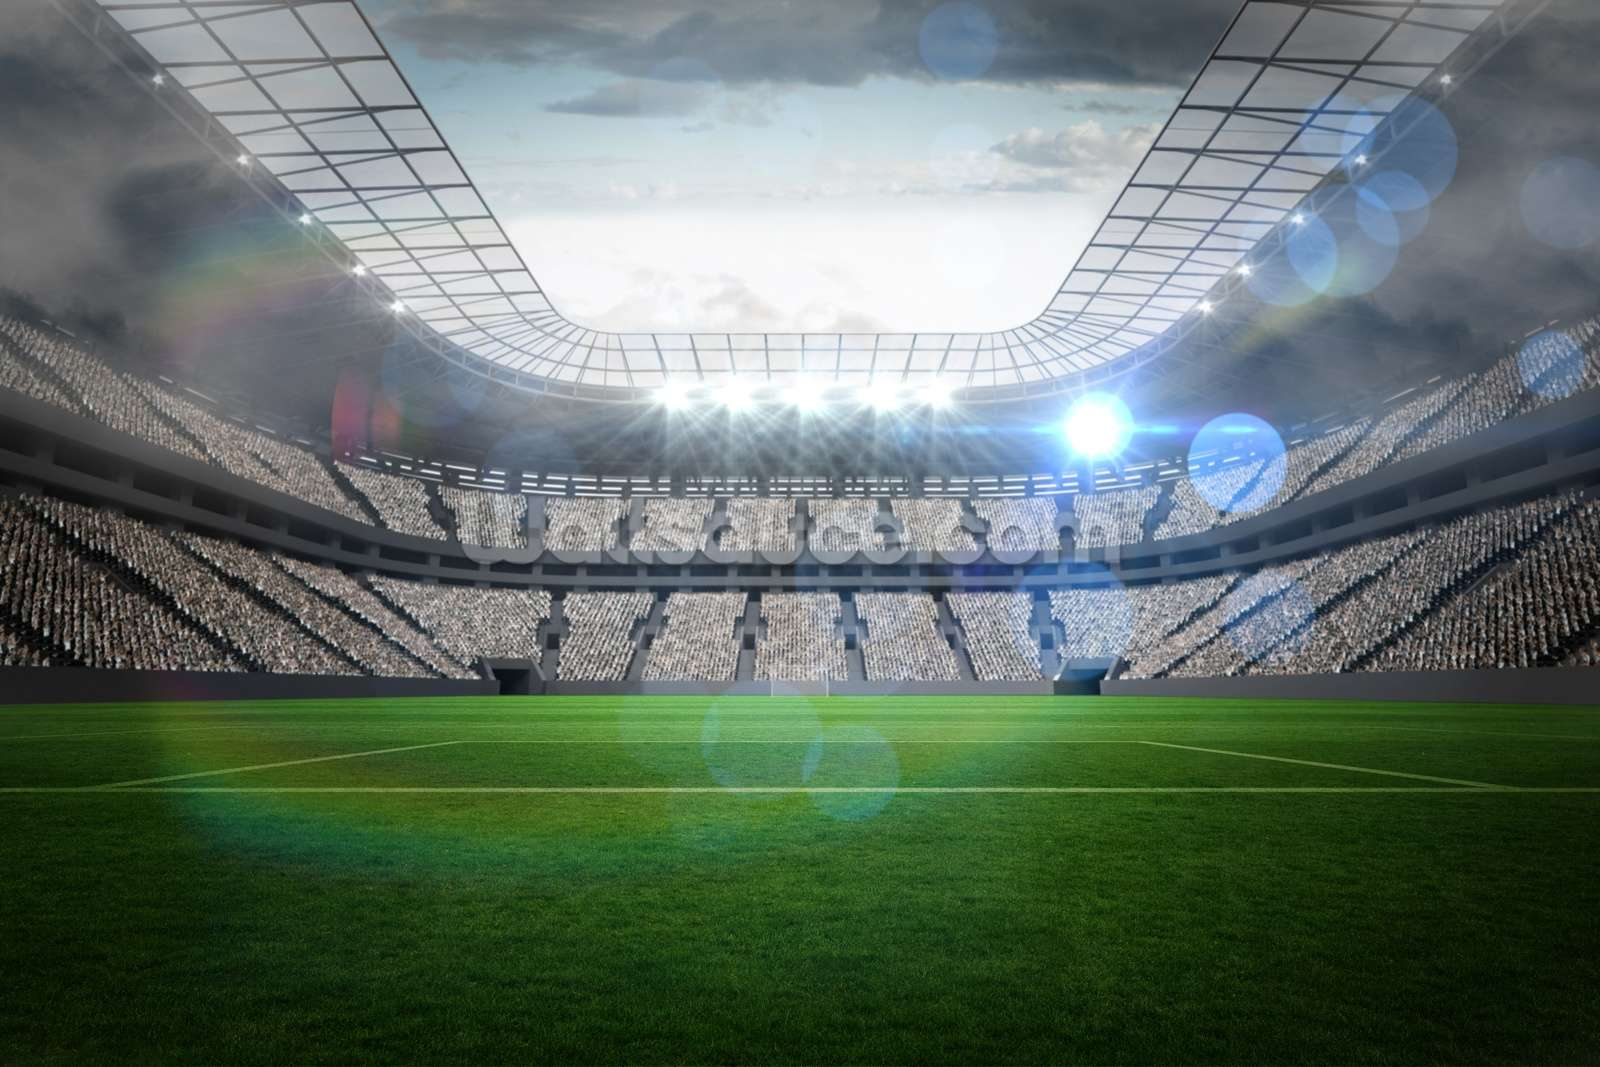 Large Football Stadium With Lights Wall Mural Photo Wallpaper Part 13